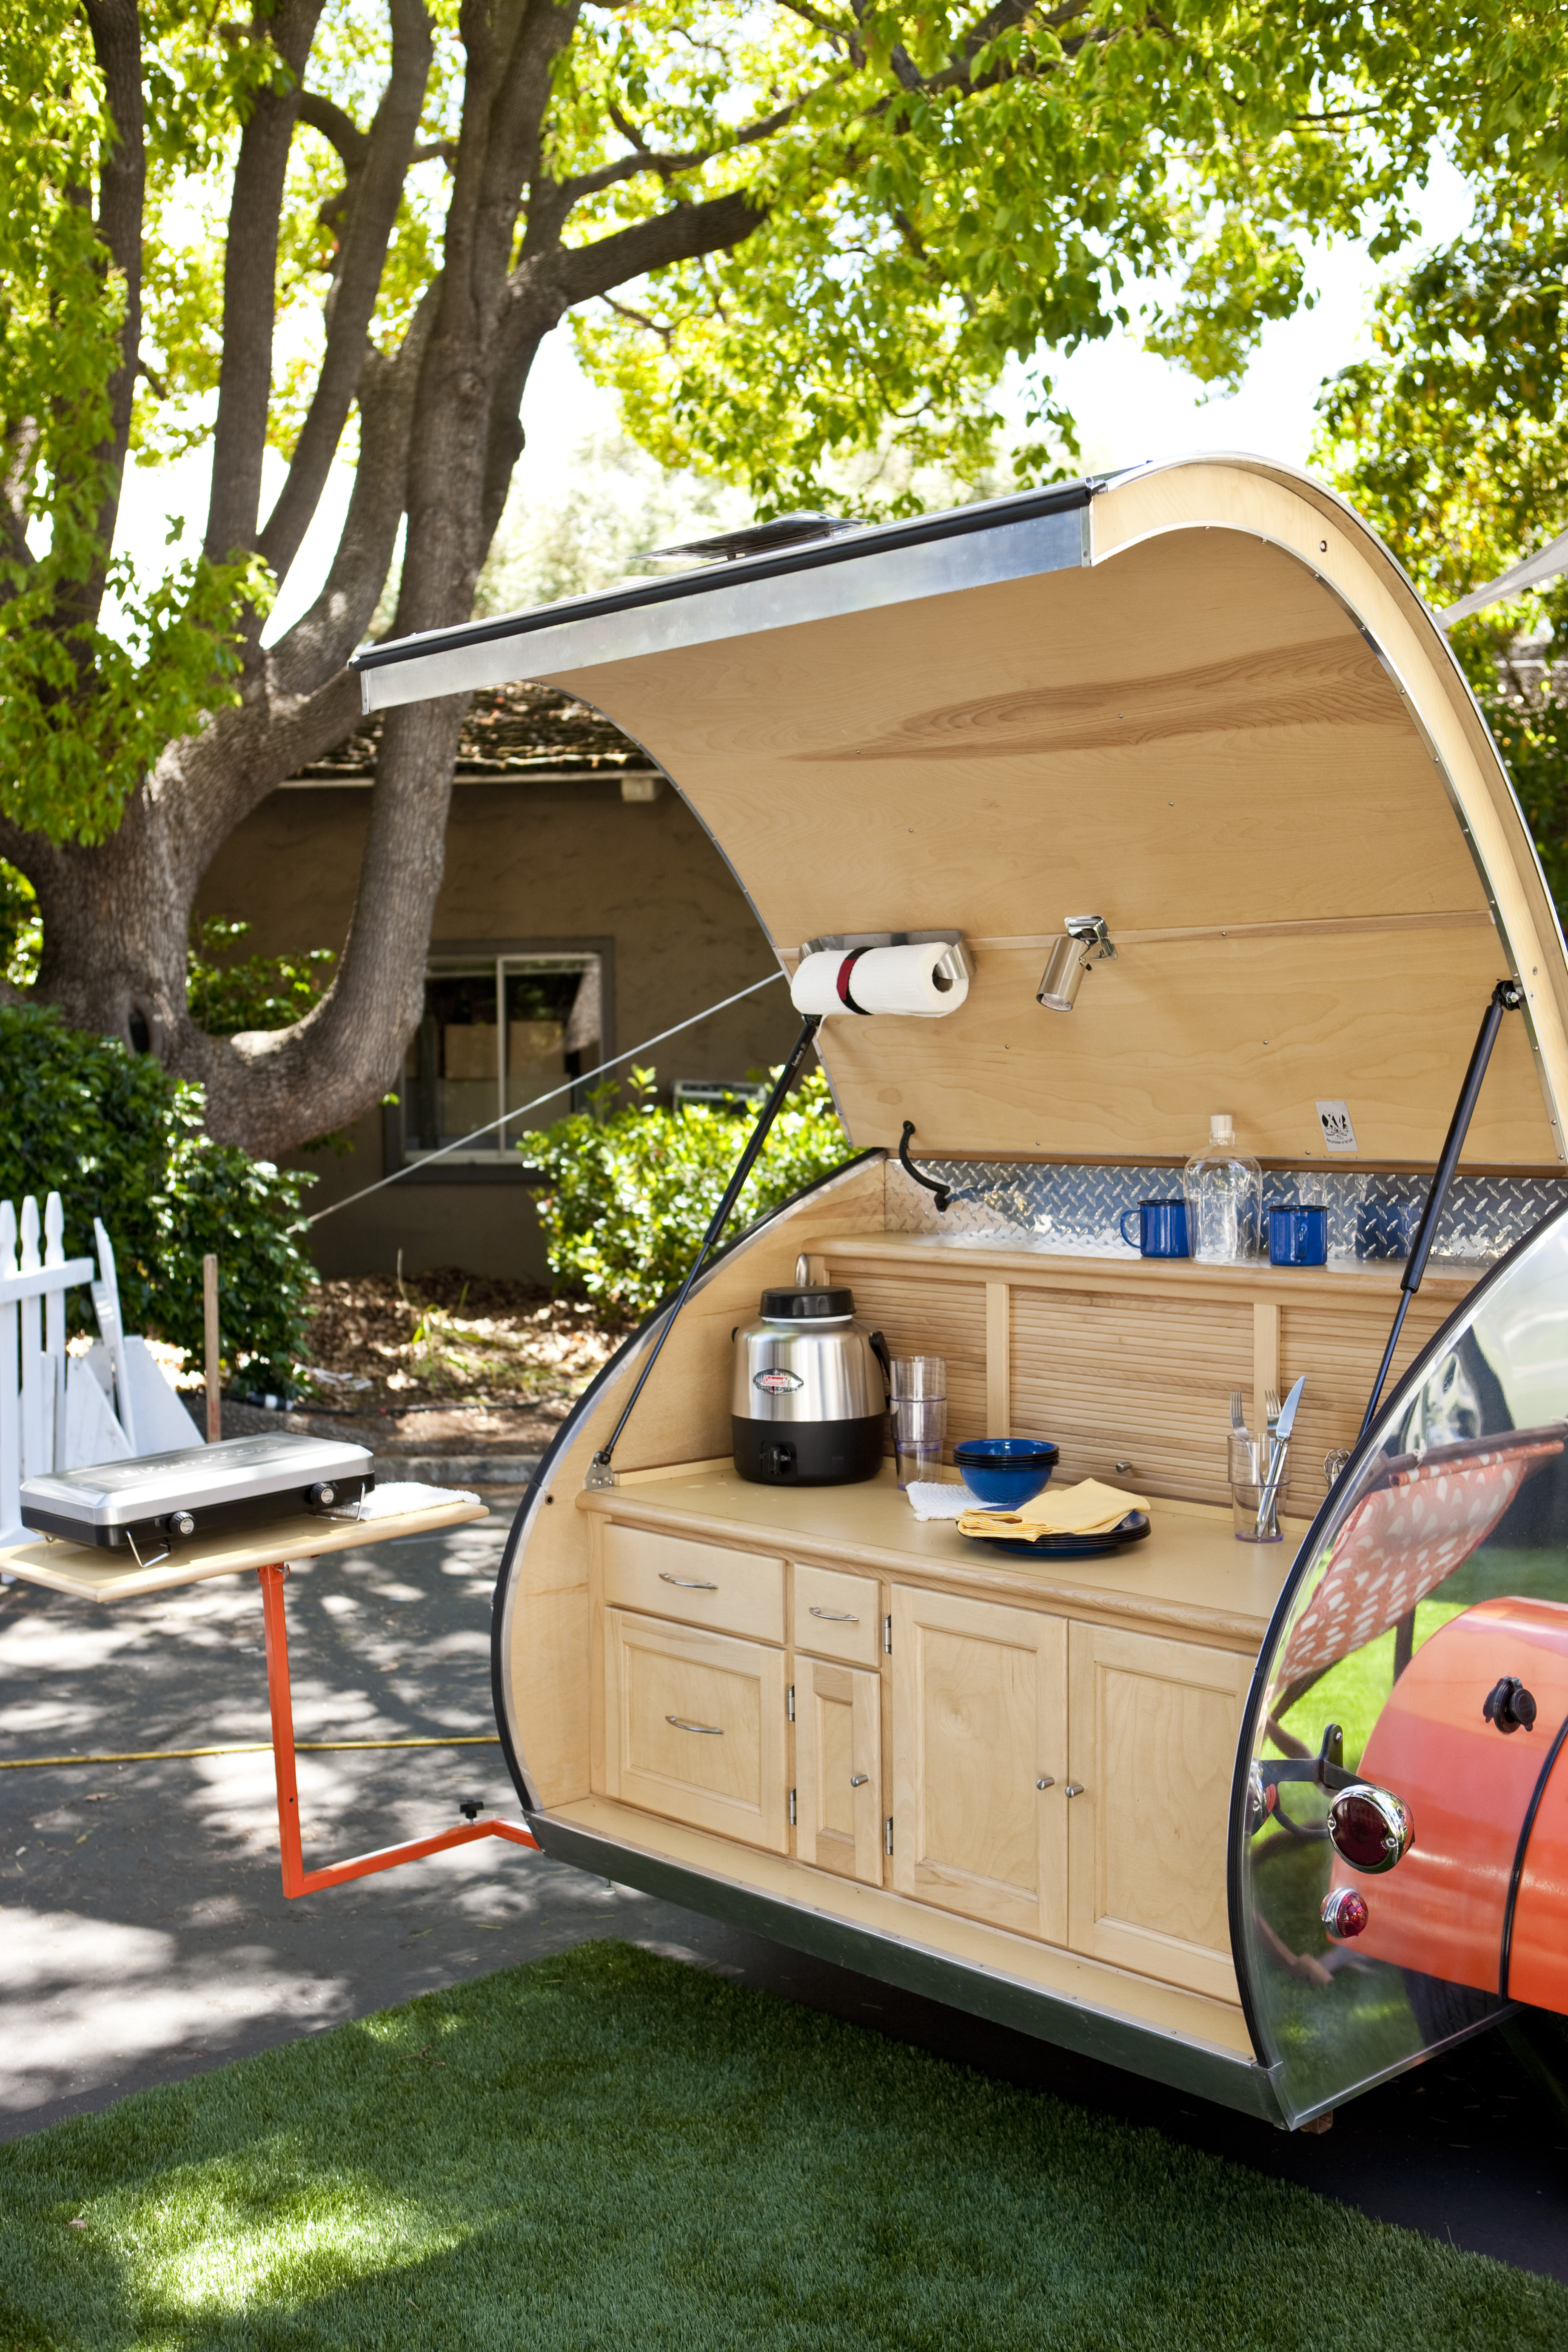 Glamping: How to camp in luxury